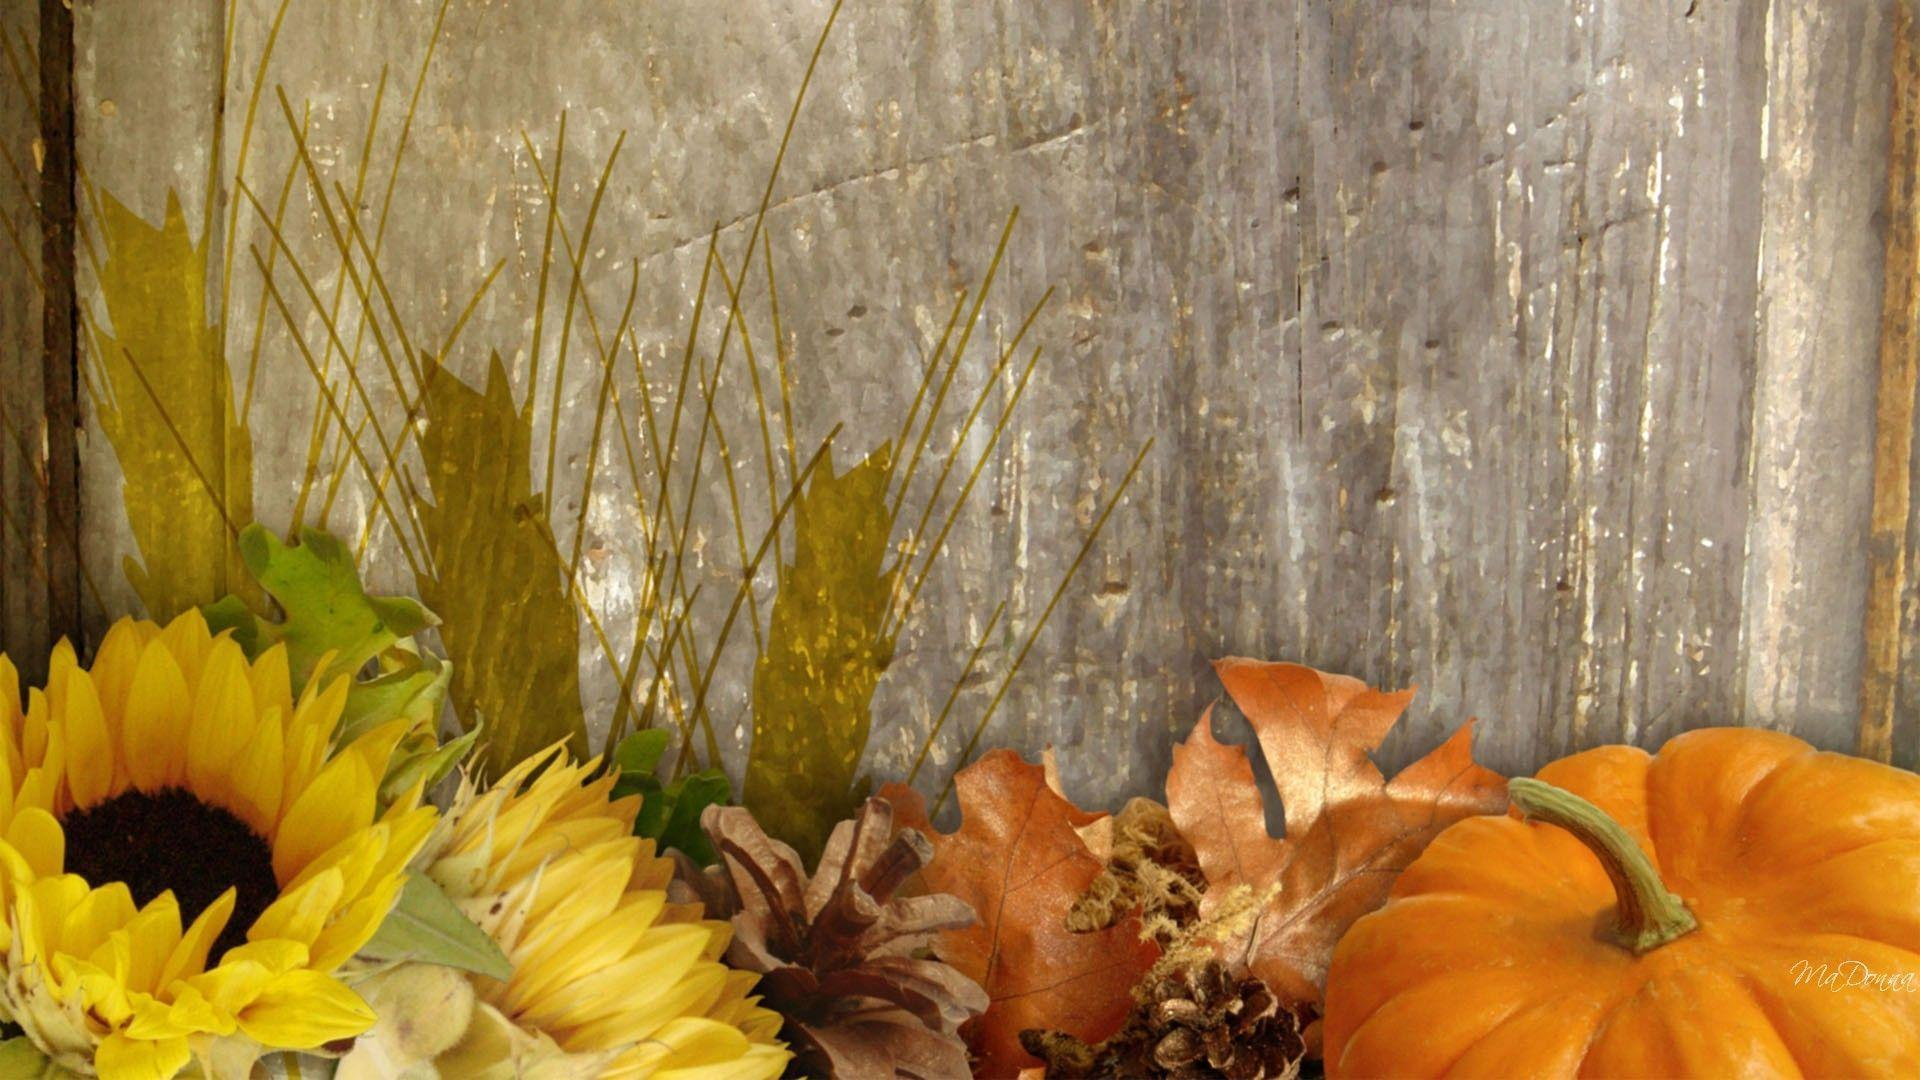 Fall Harvest Desktop Background, wallpaper, Fall Harvest Desktop